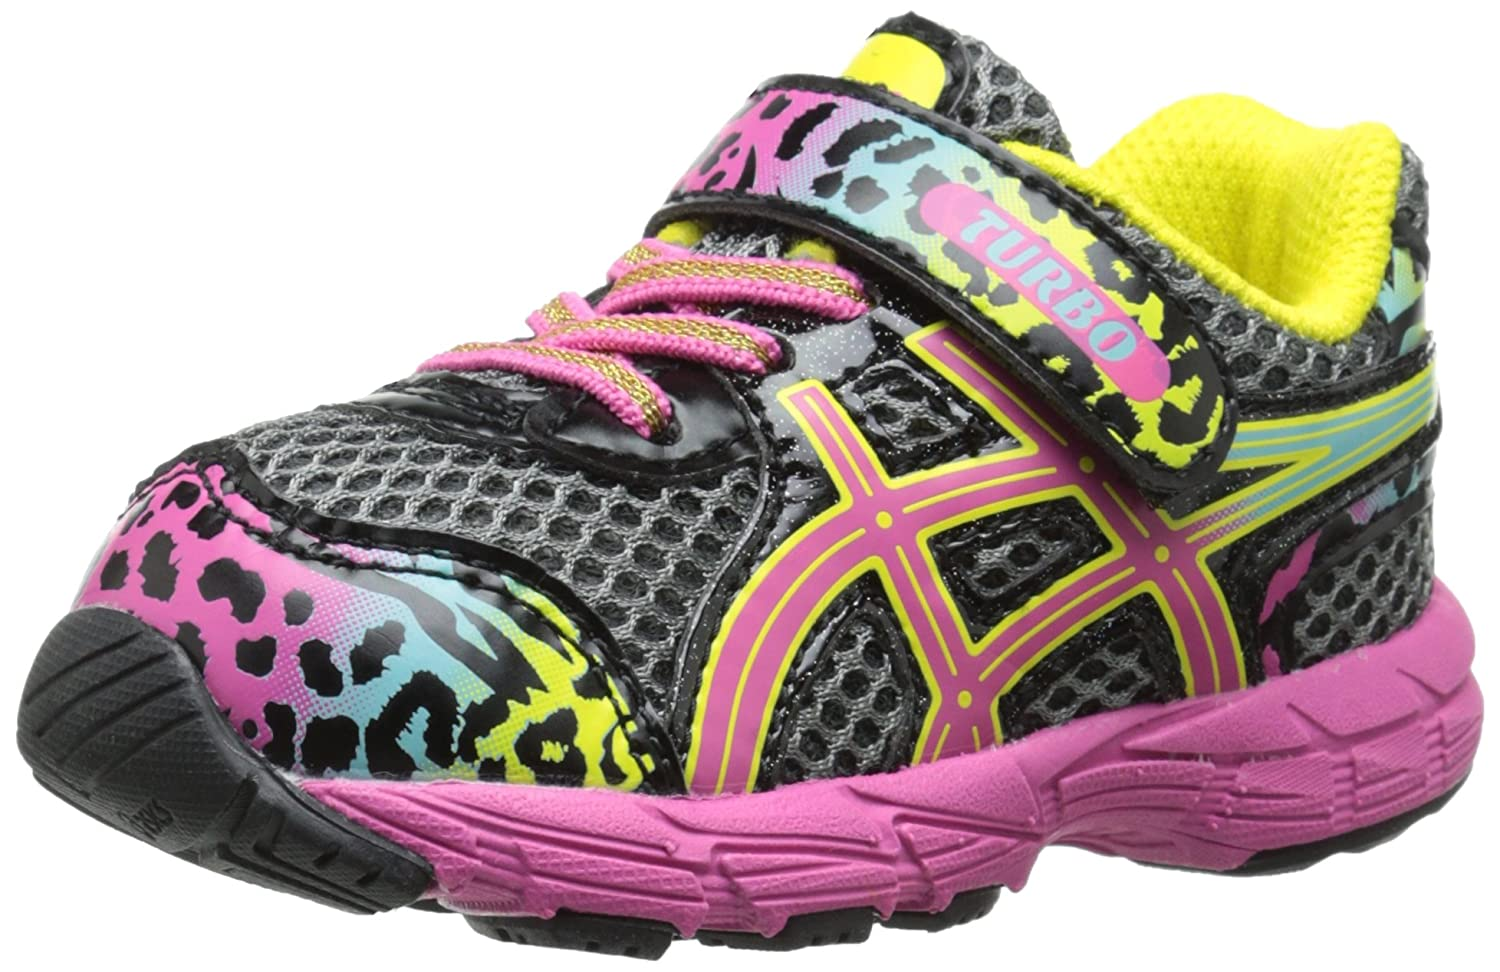 asics shoes for kids with leopard print